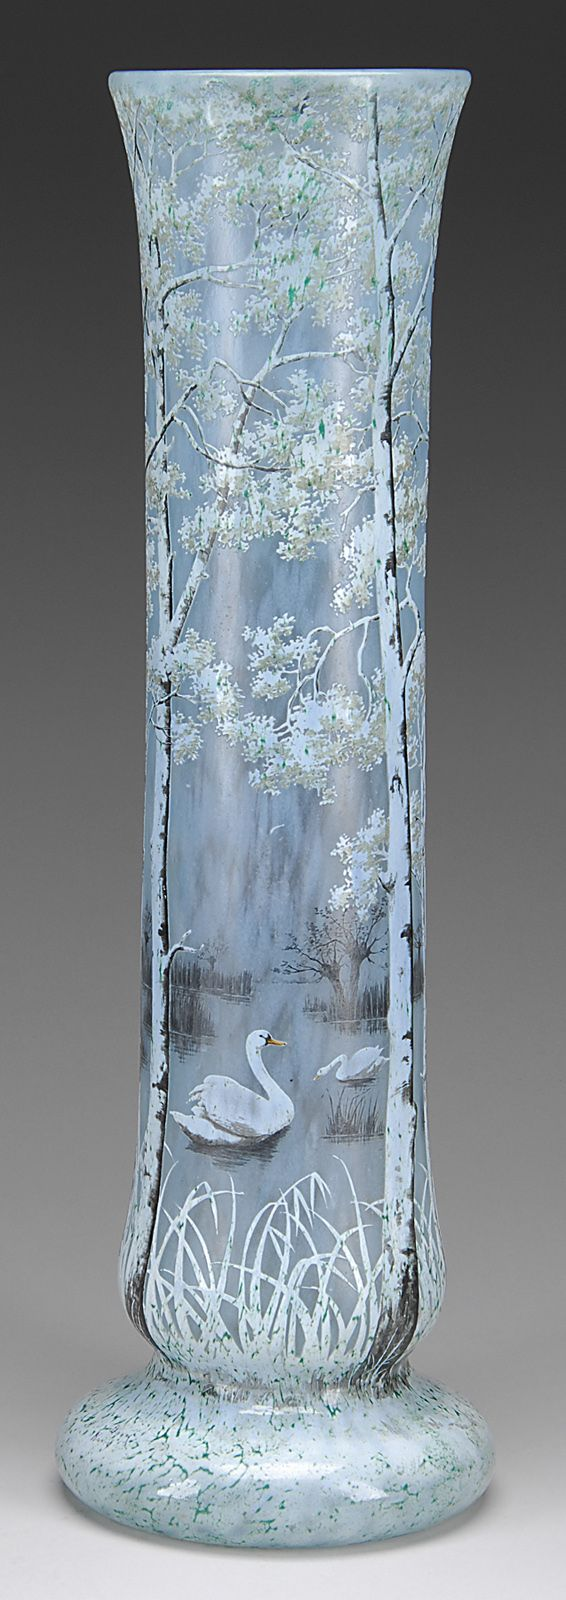 54 best images about daum on pinterest glass mushrooms crystal french cameo glass is highlighted by a magnificent and monumental 26 daum swan vase with floridaeventfo Choice Image